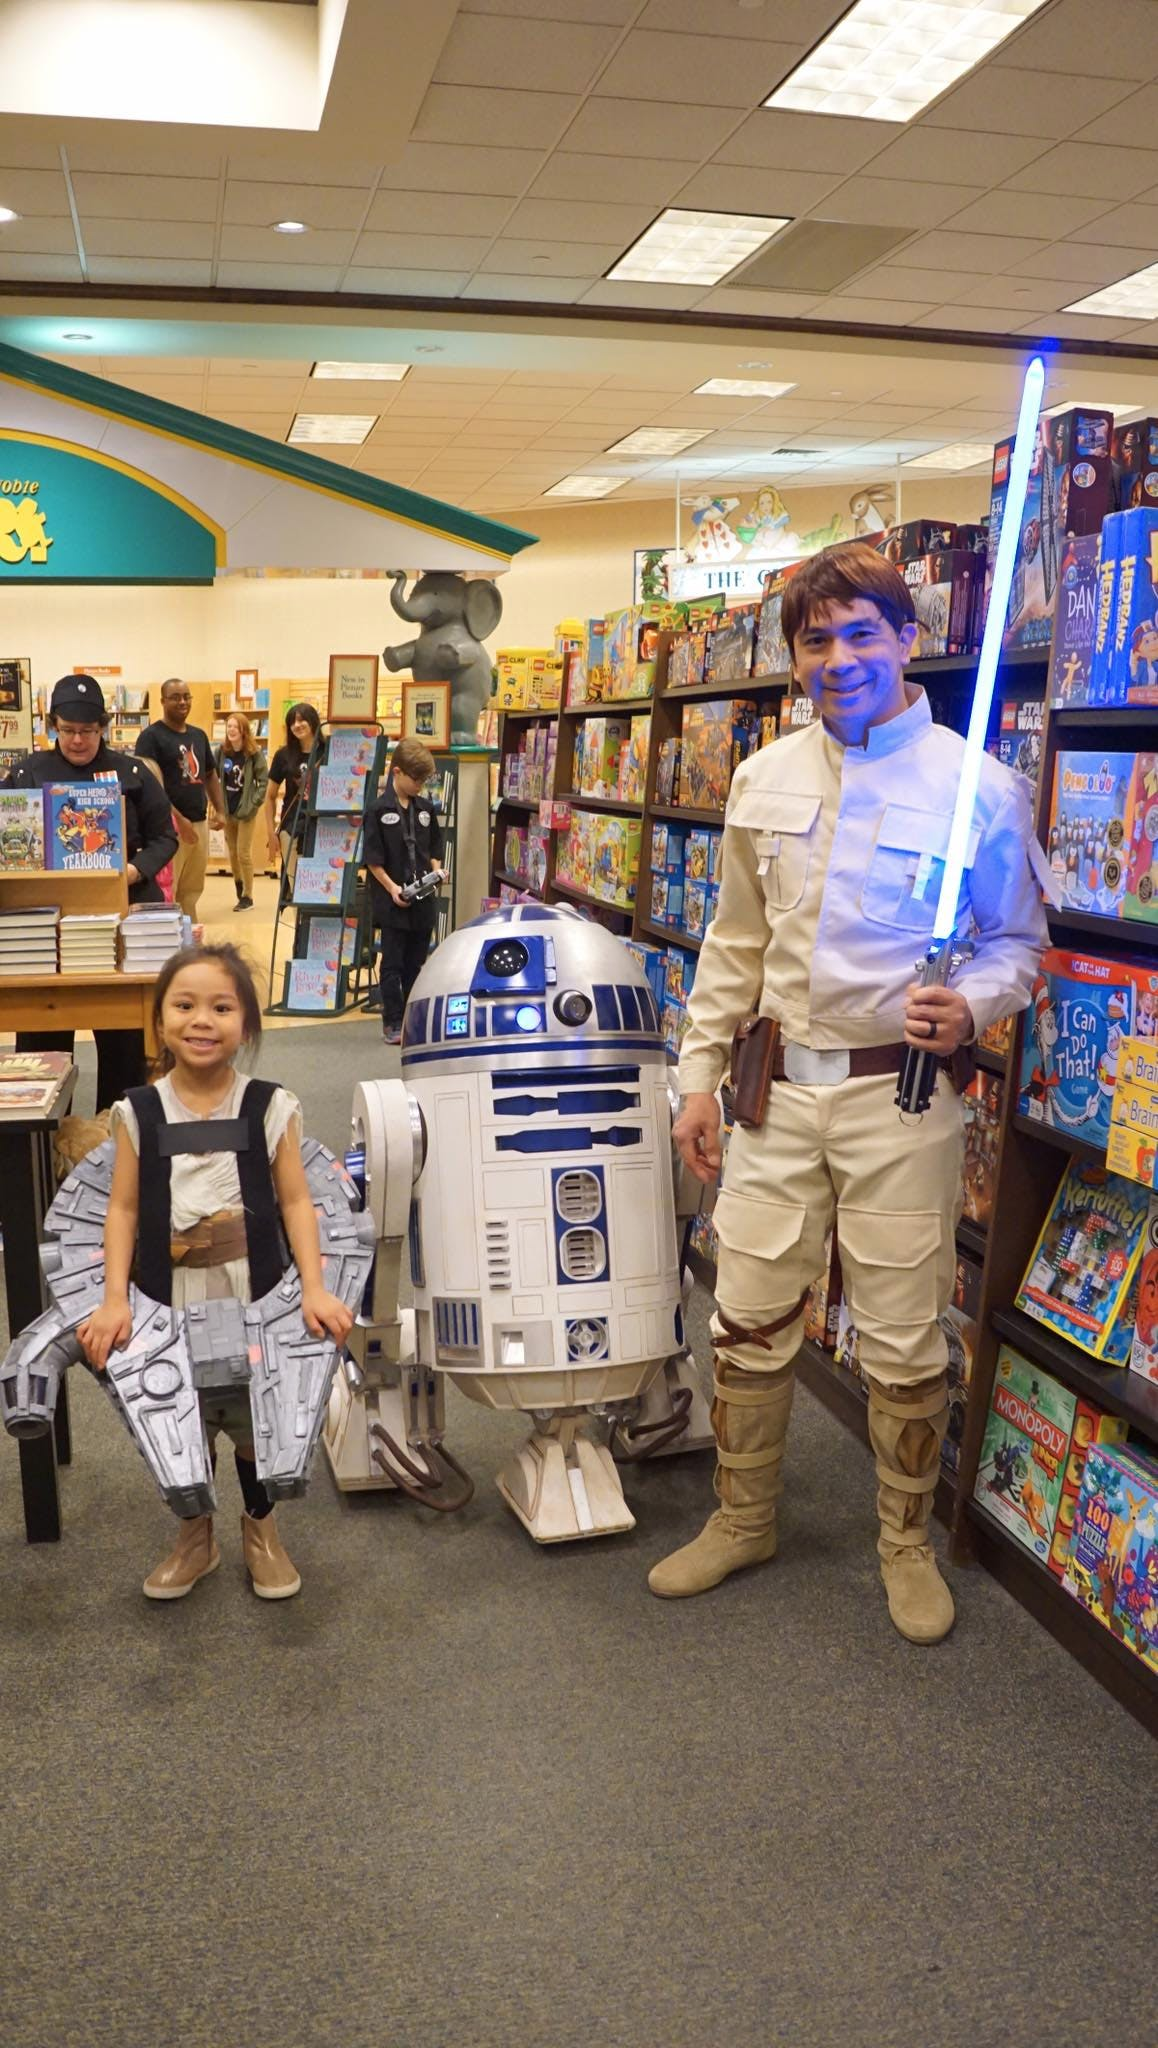 We had a lot of fun! This was my daughter's first ever trooping event.